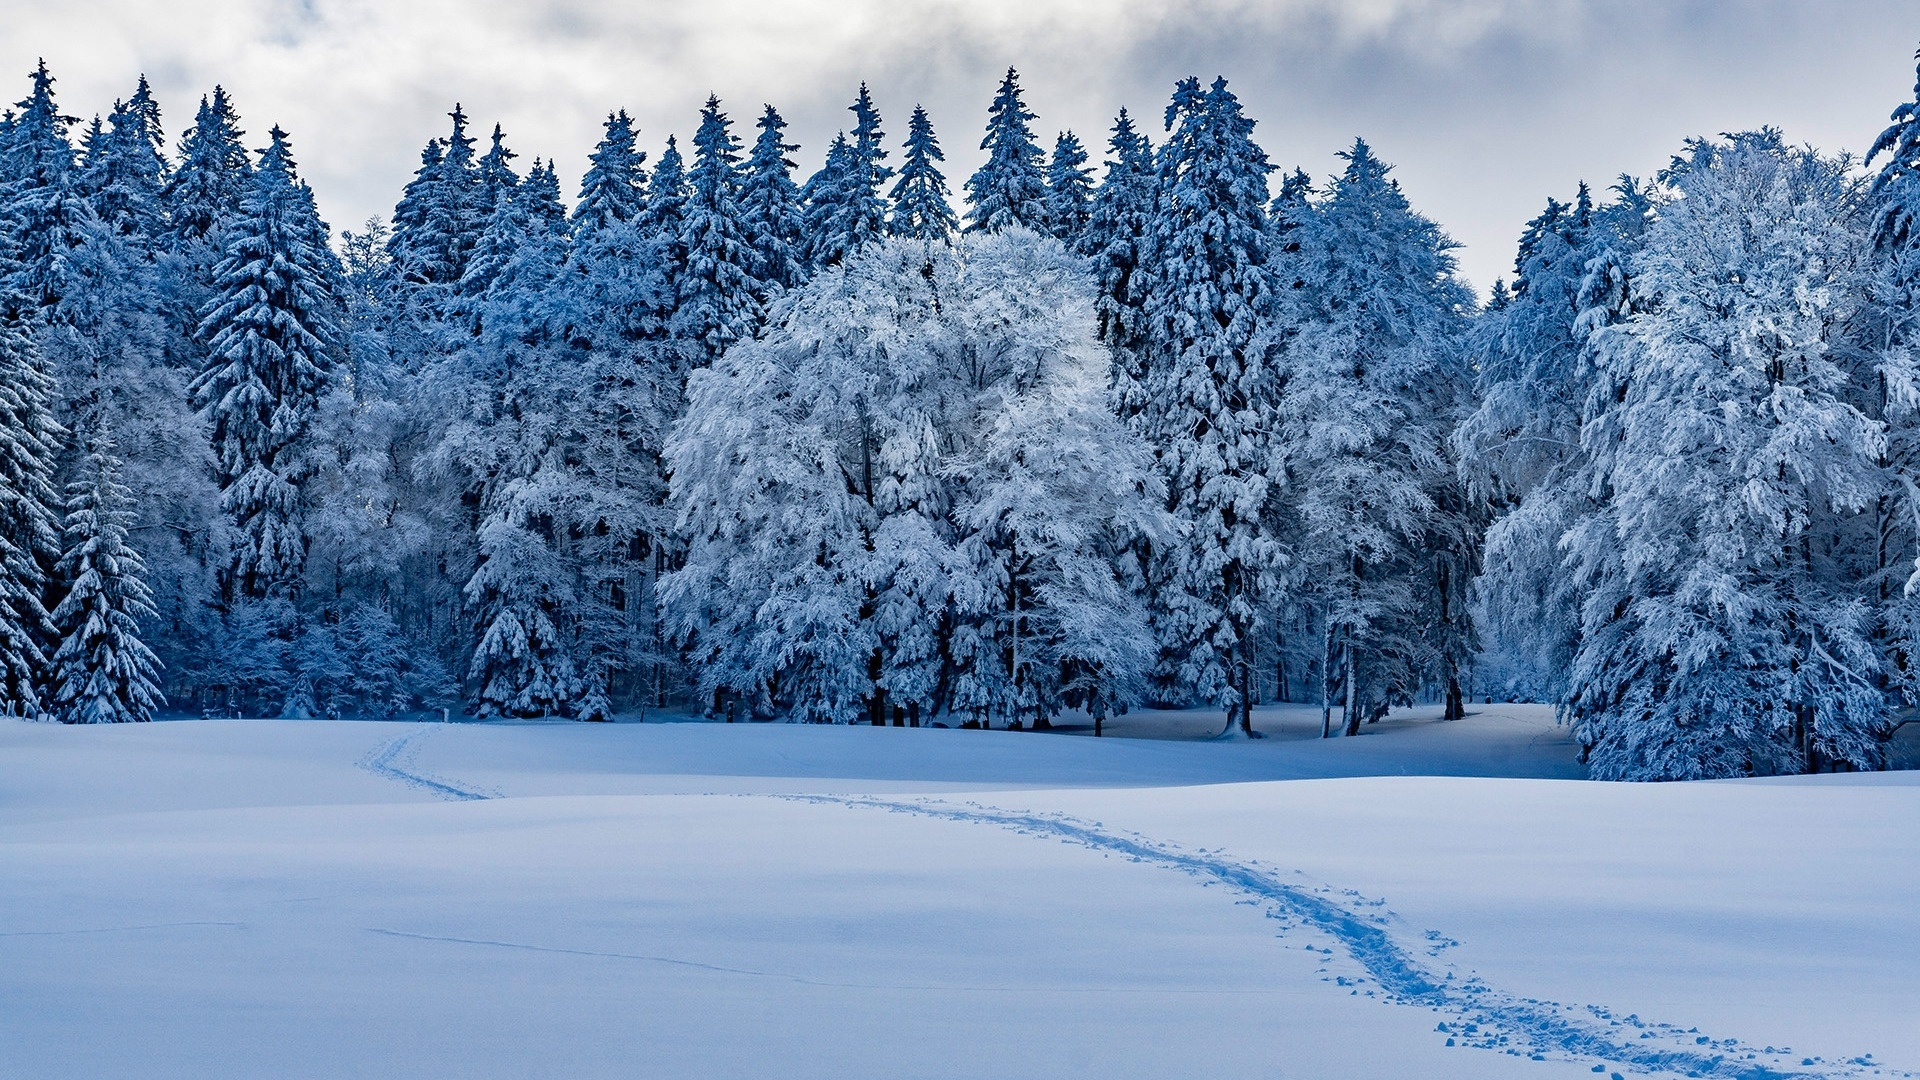 Snow Forest Wallpaper theme